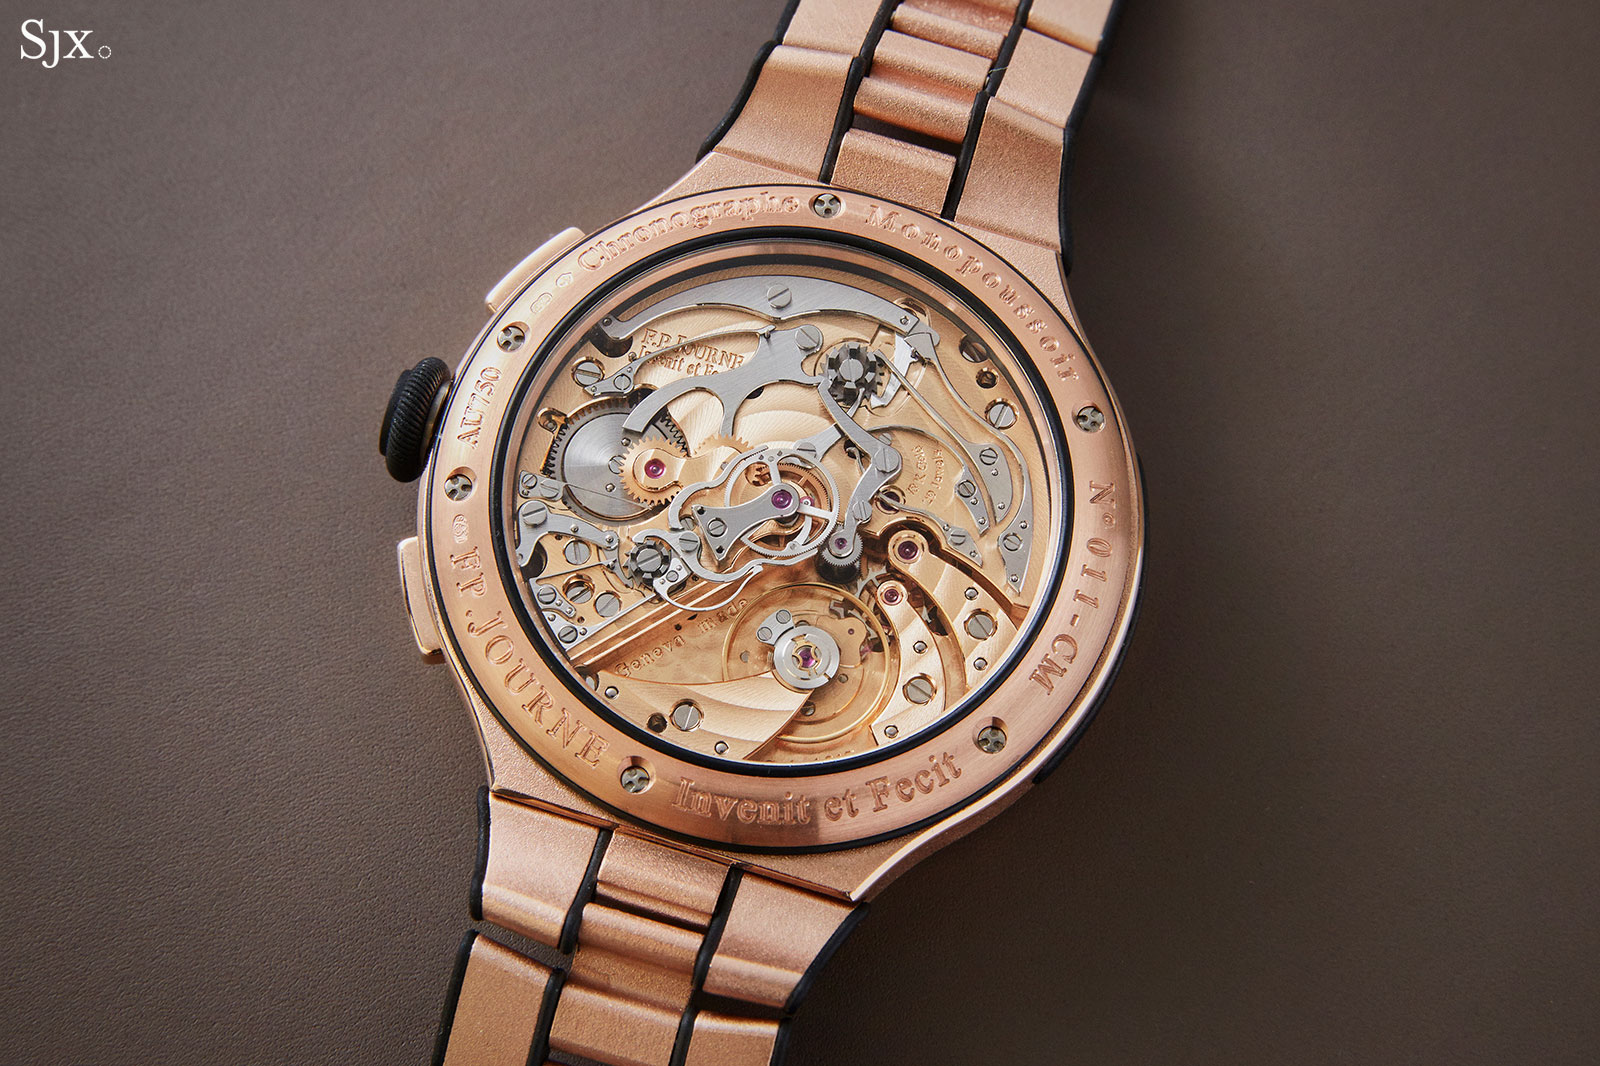 FP Journe Chronographe Monopoussoir Rattrapante rose gold 3